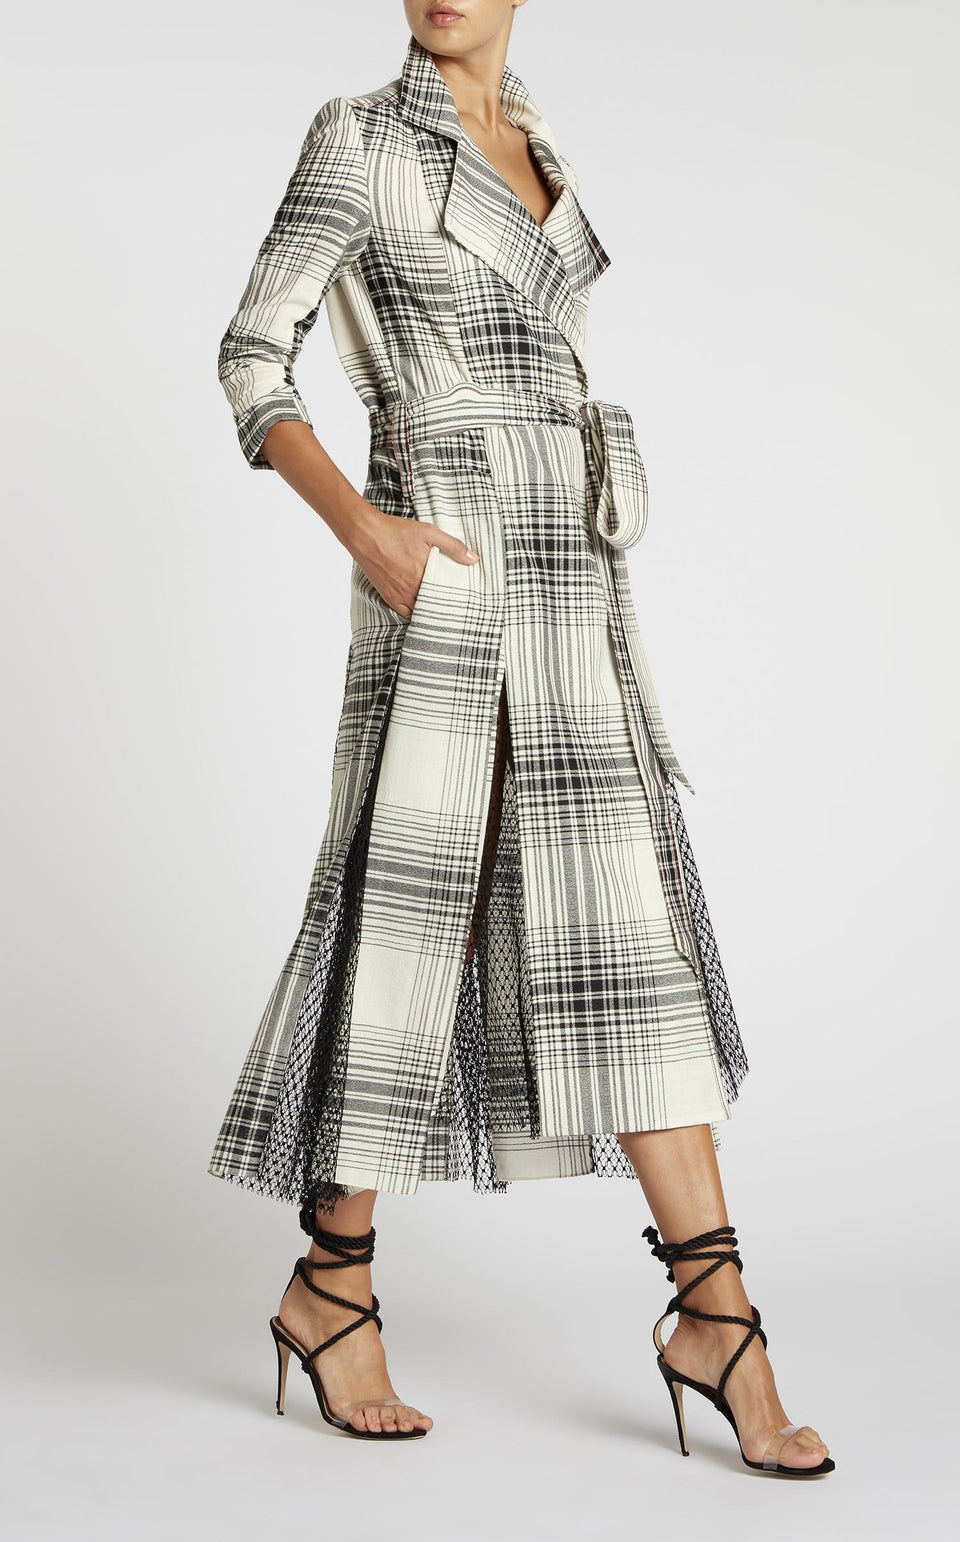 Drummond Coat In Monochrome from Roland Mouret